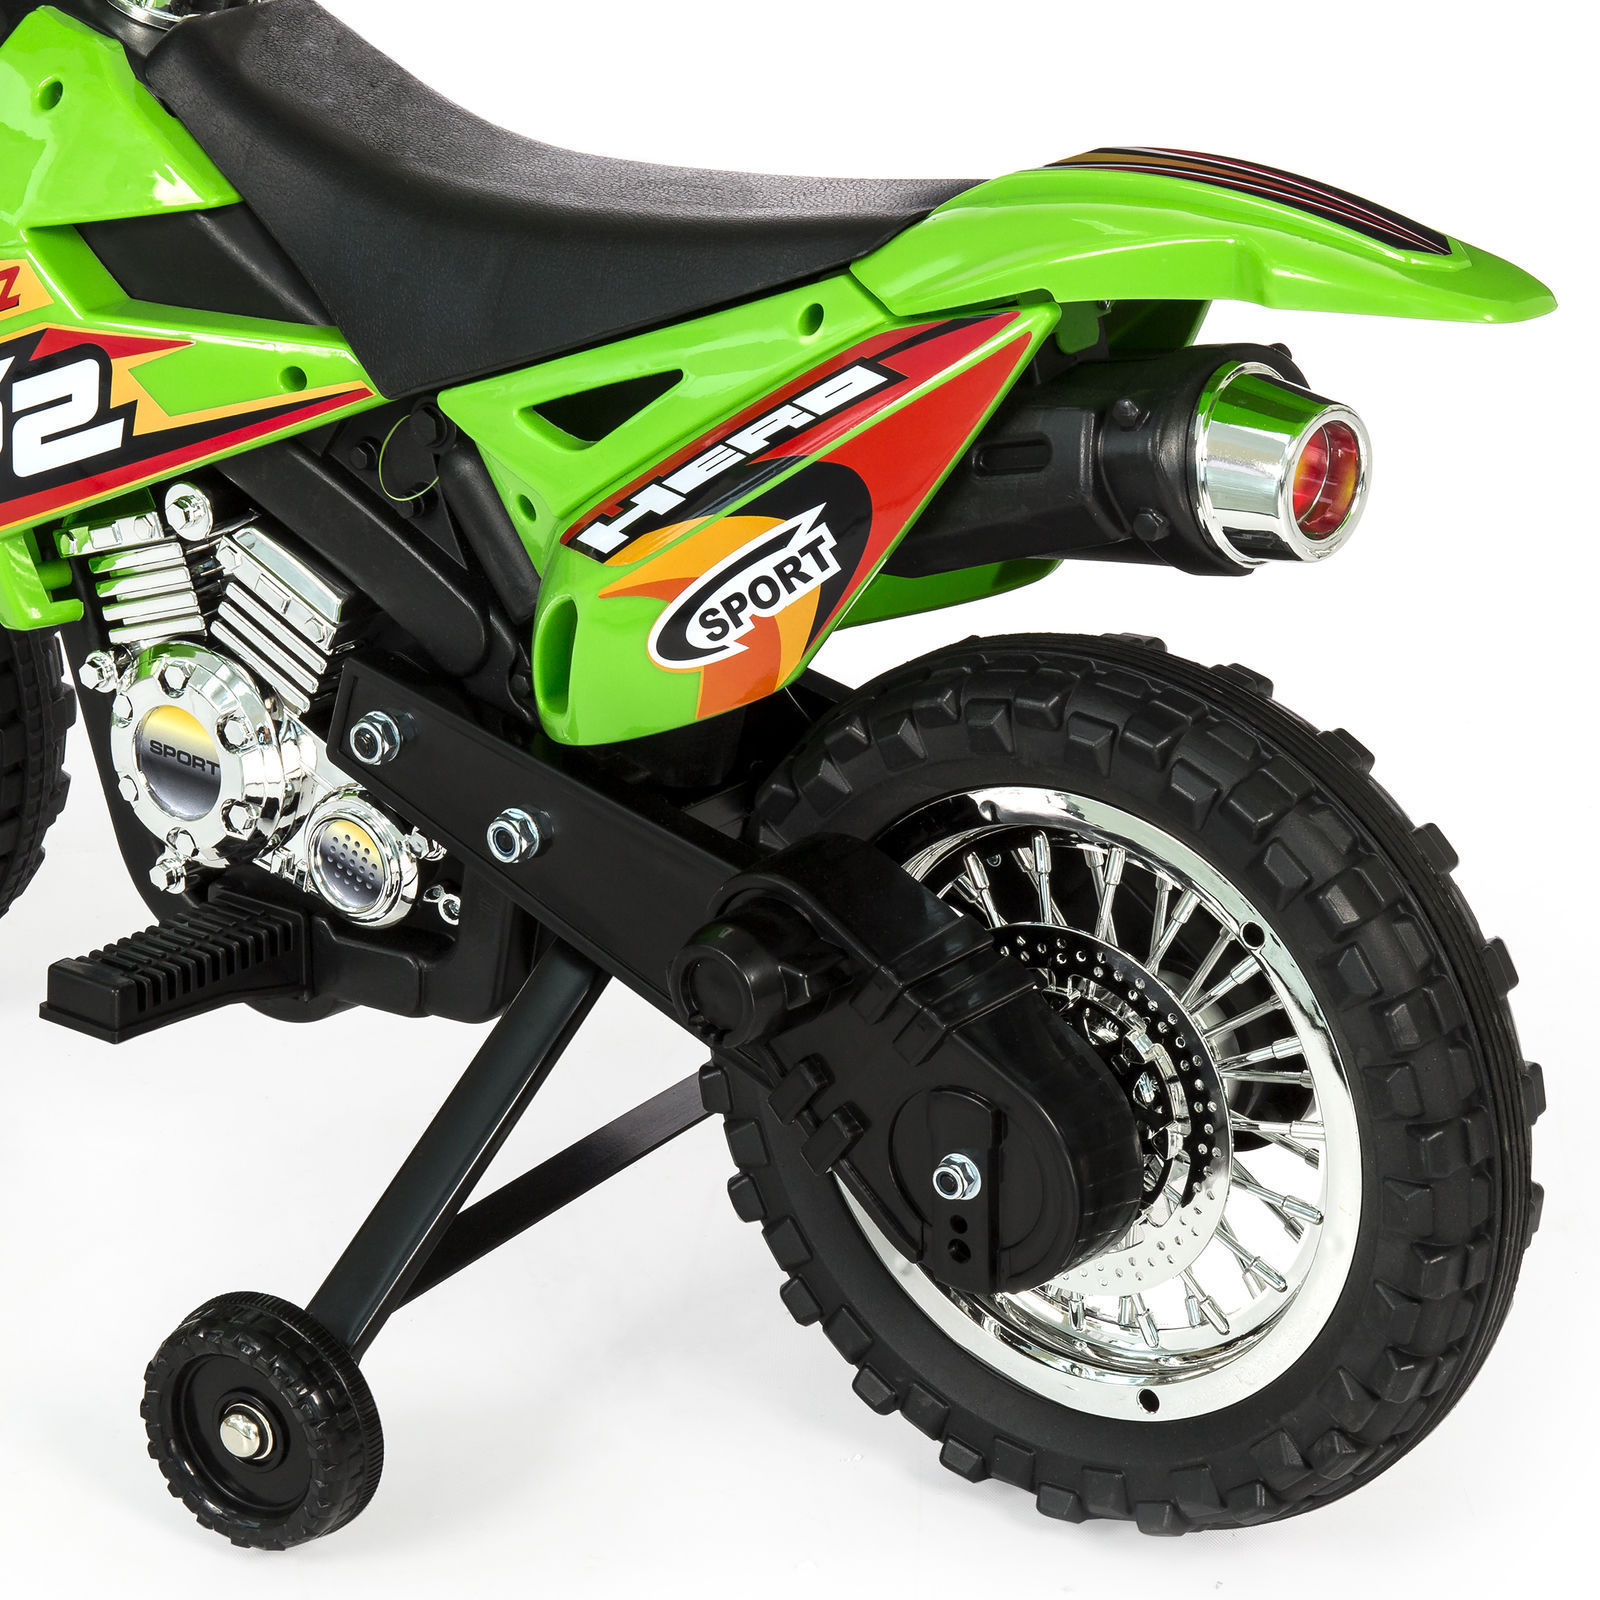 electric motorcycle 6v bike dirt battery powered wheels ride training choice light music toys cars zoom plastic mph abs speed